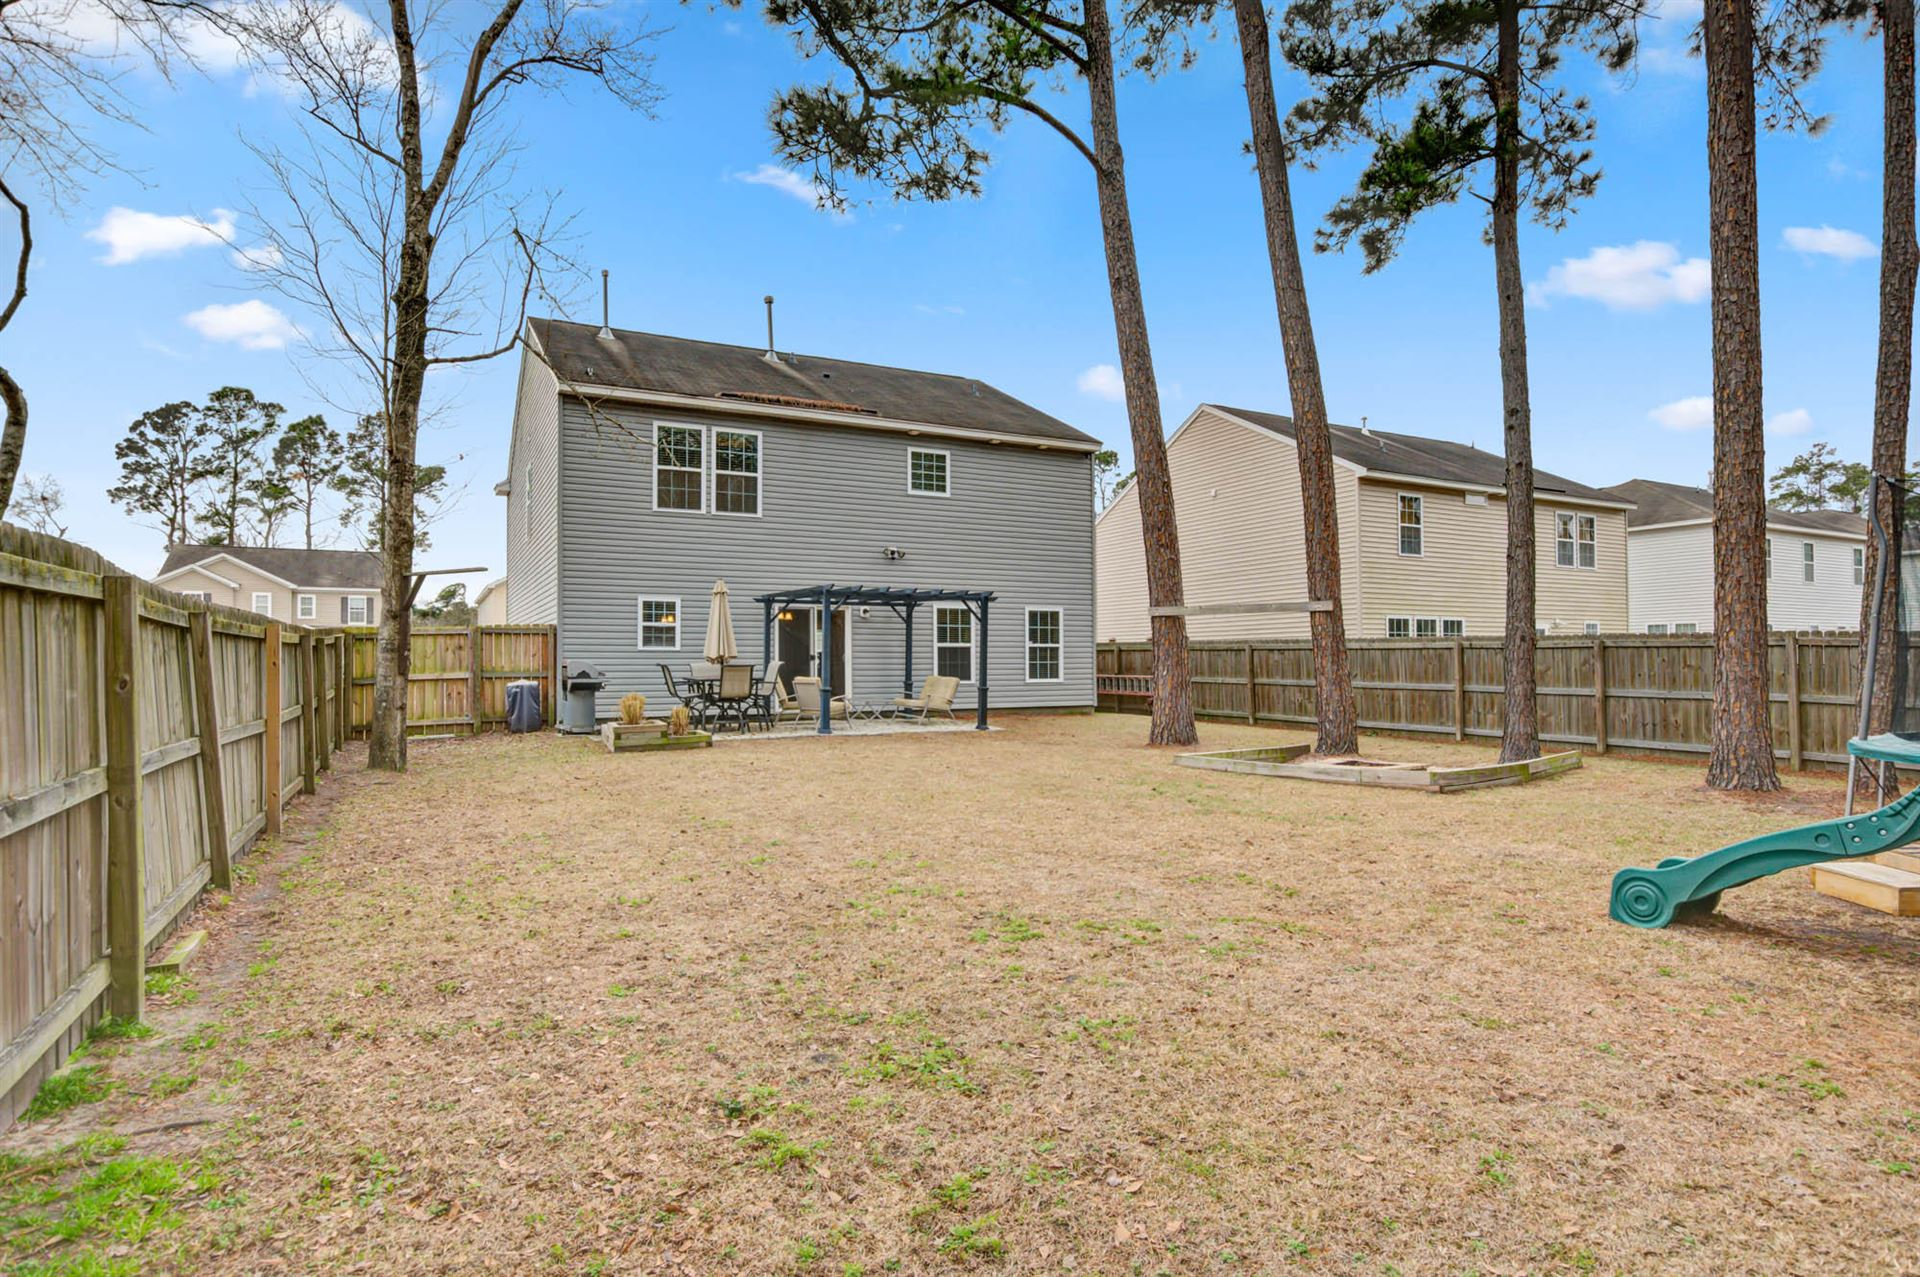 Photo of 225 Withers Lane, Ladson, SC 29456 (MLS # 21002189)